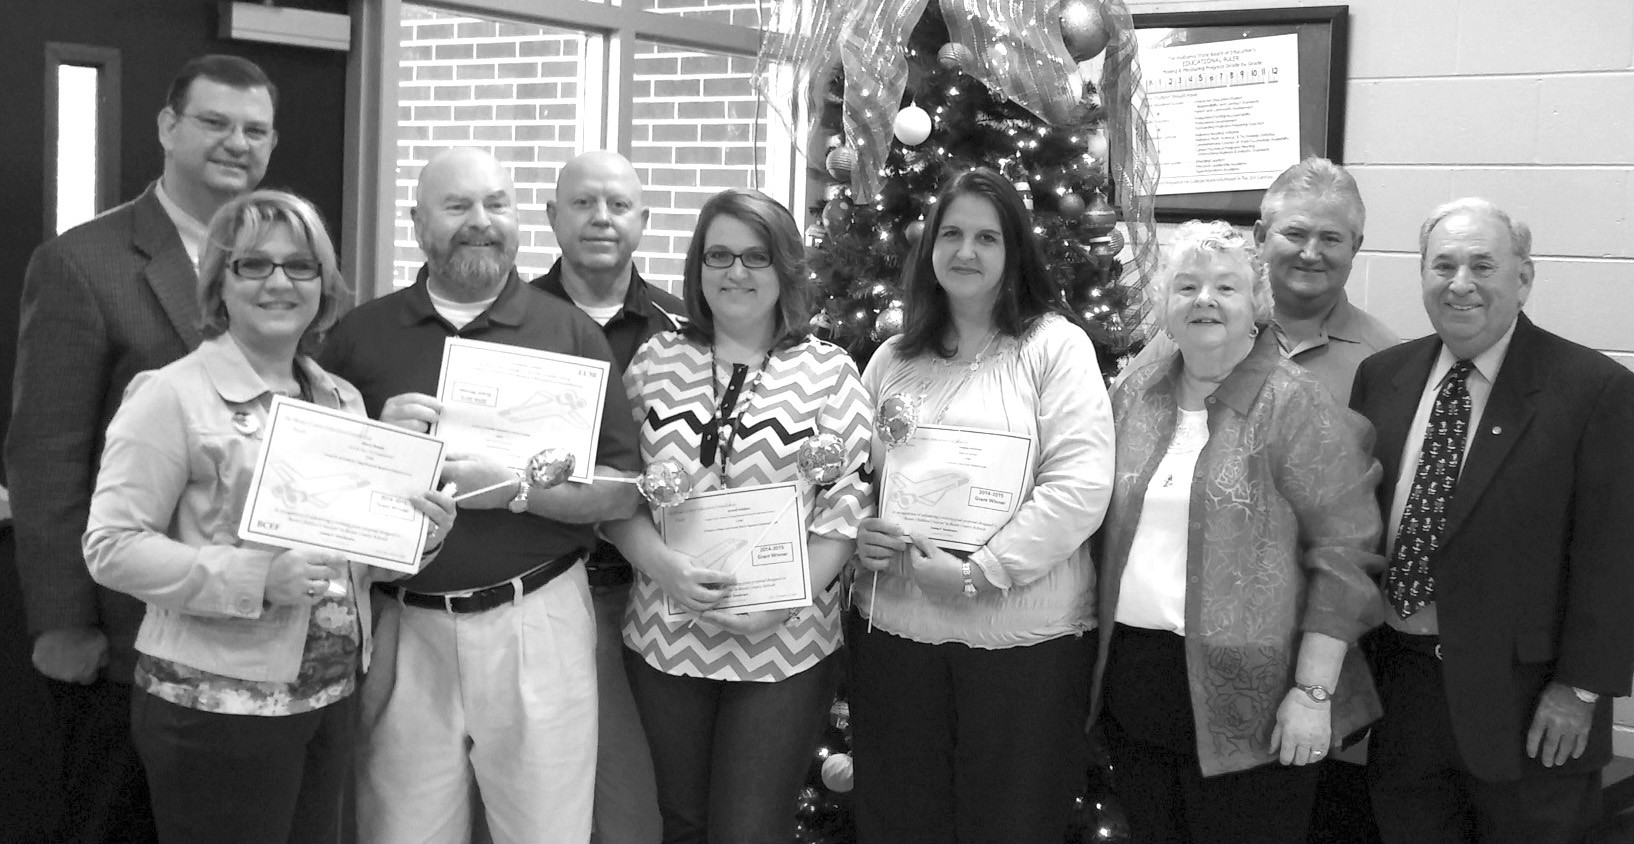 Members of the Blount County Education Foundation Board of Directors along with others from the Classroom Grant Prize Patrol present grants to teachers at Locust Fork High School.